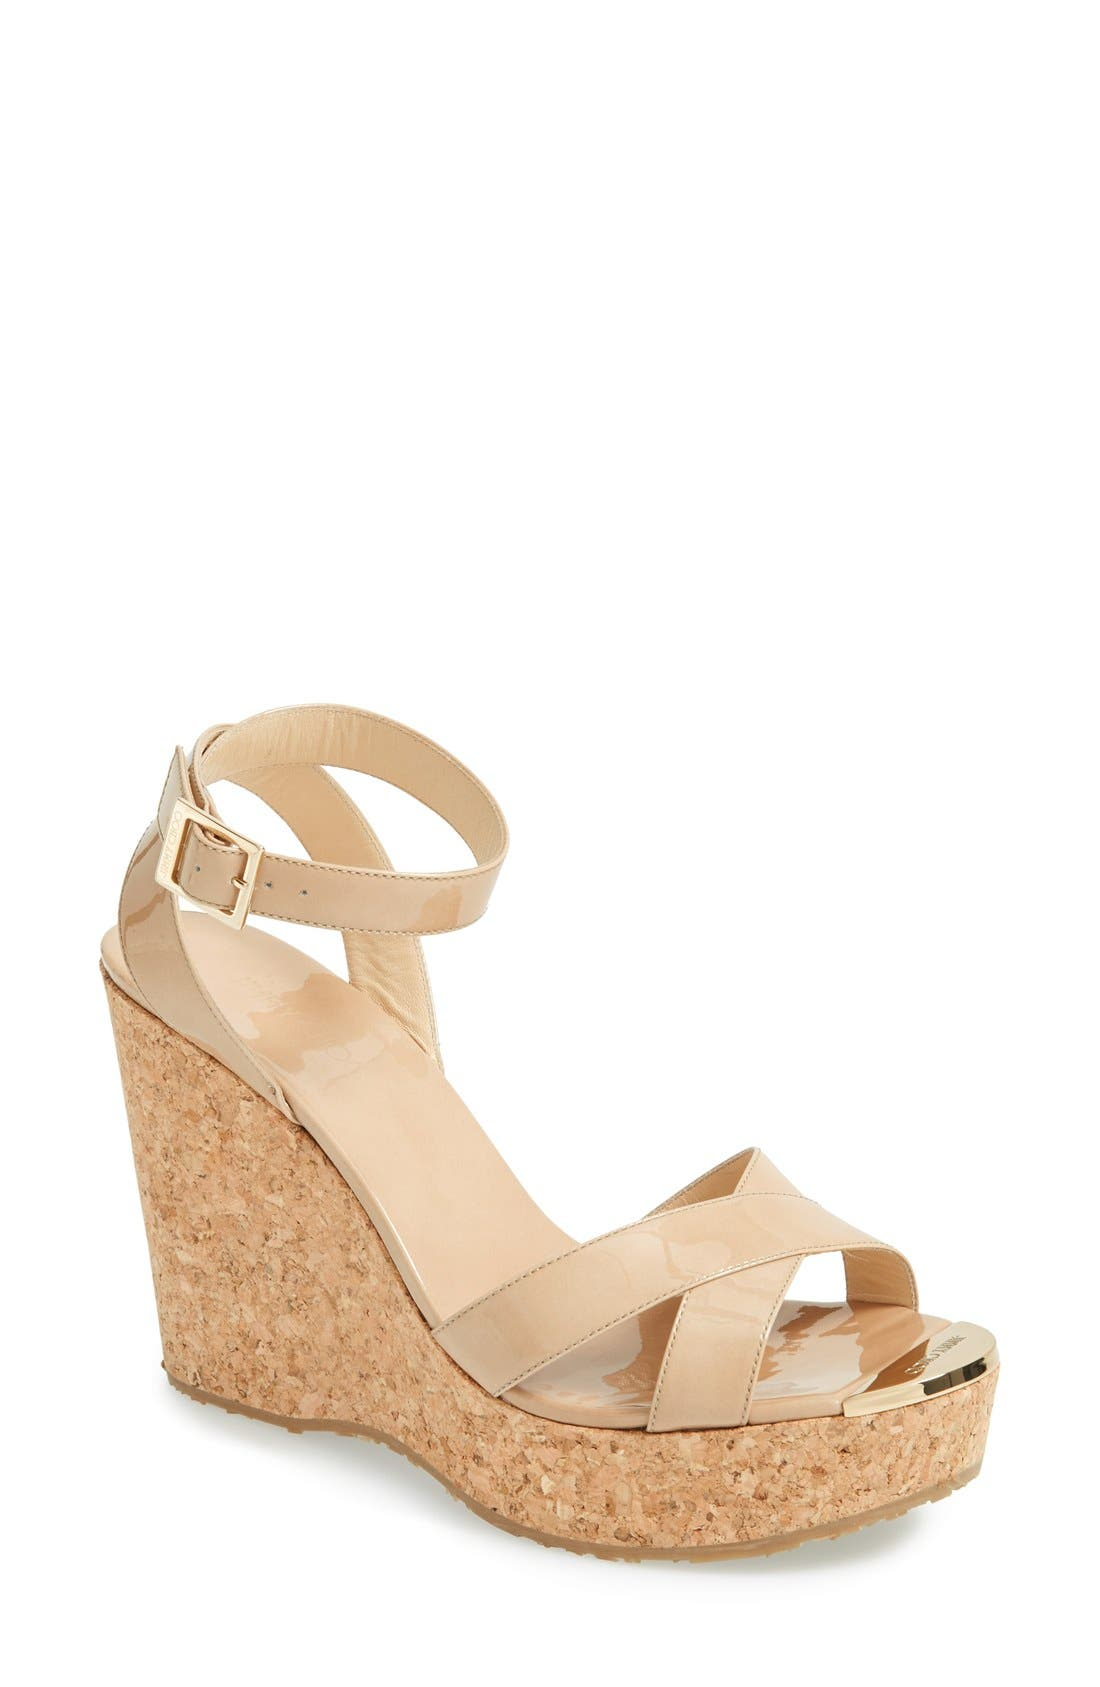 JIMMY CHOO 'Papyrus' Cork Wedge Sandal, Main, color, 250